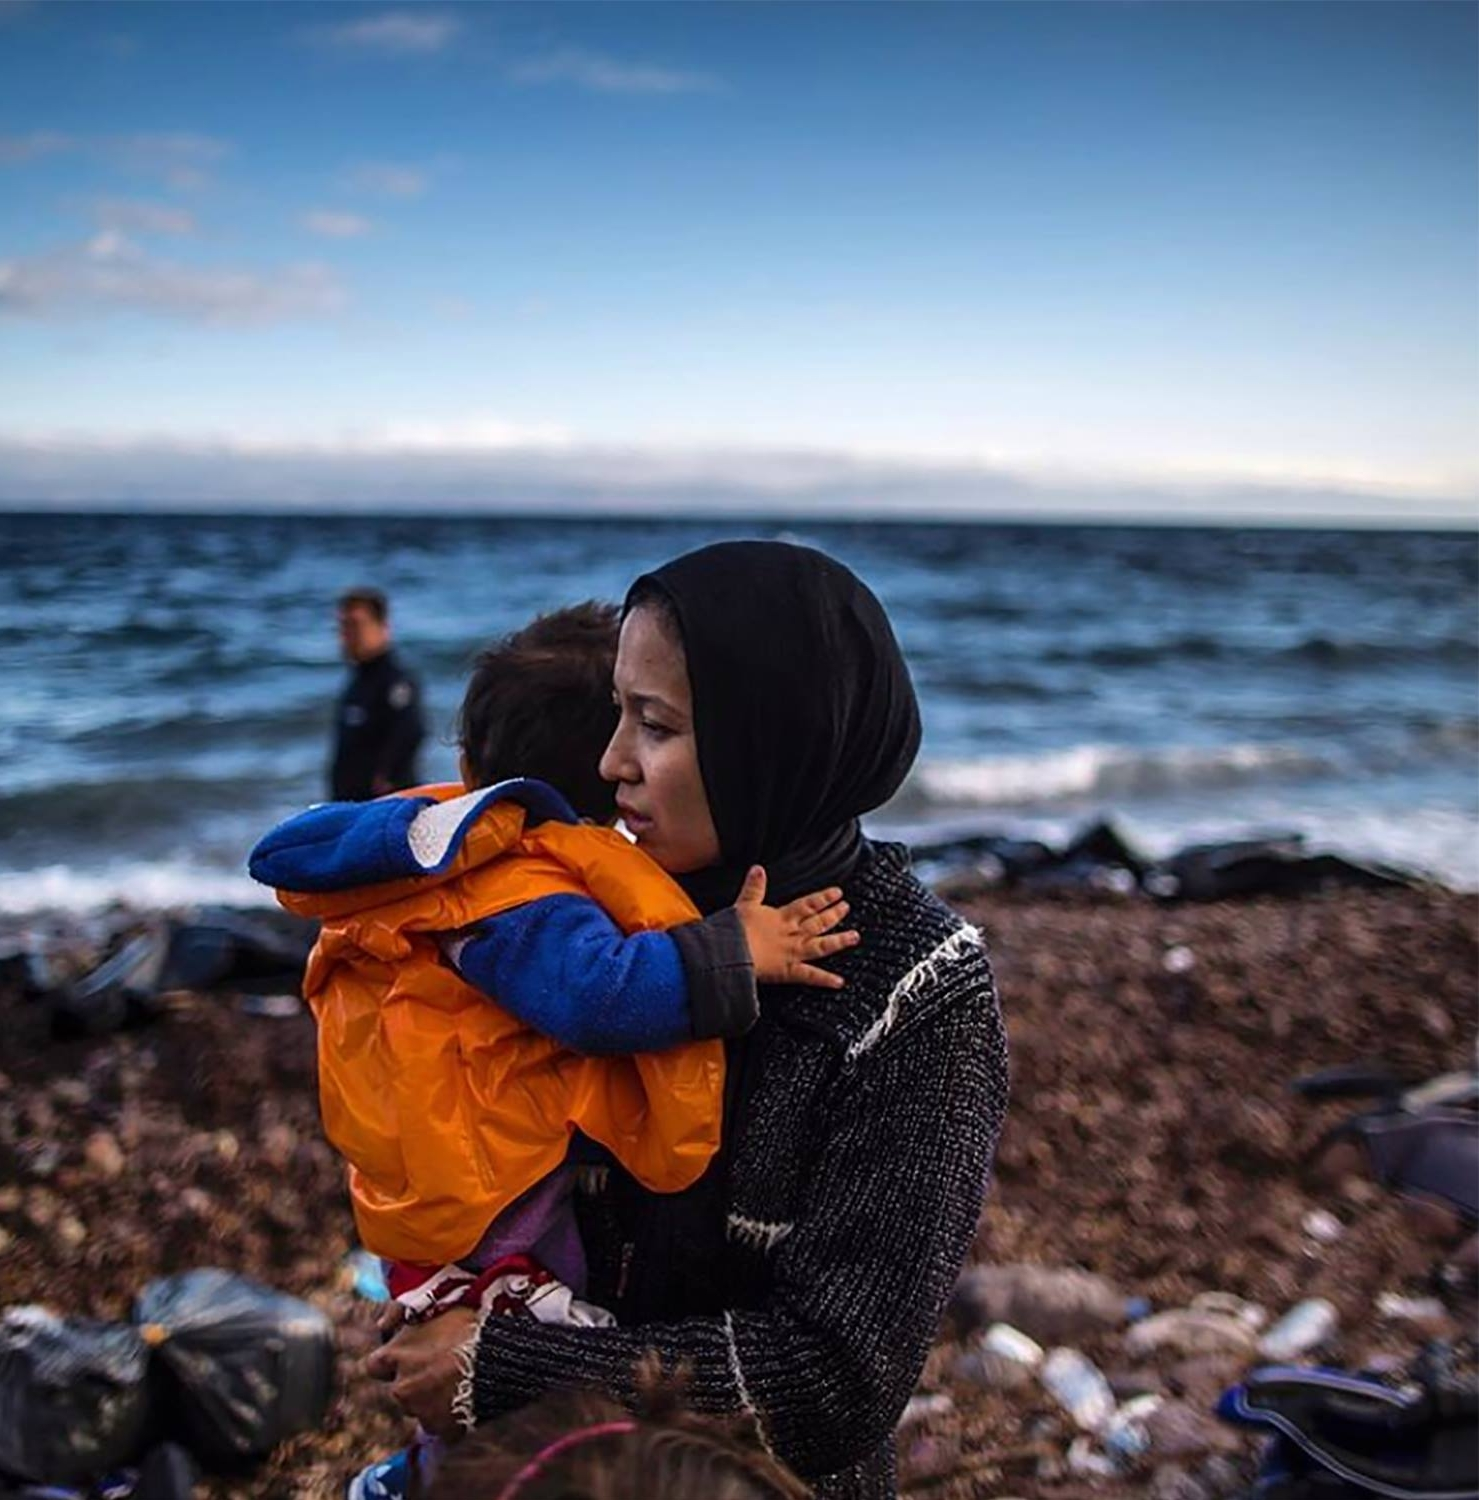 Photo credit: Help Refugees